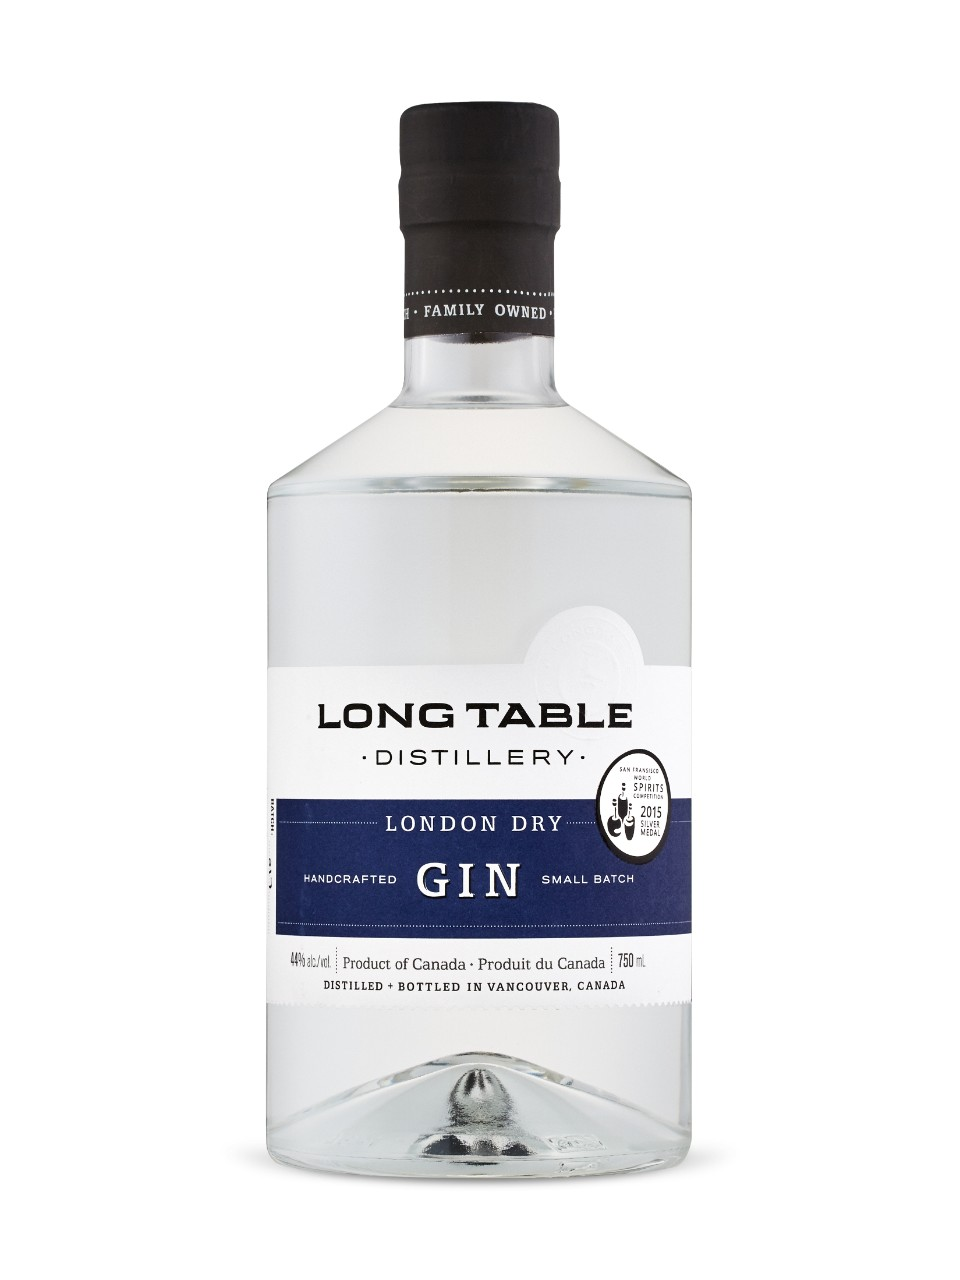 Long Table Distillery London Dry Gin